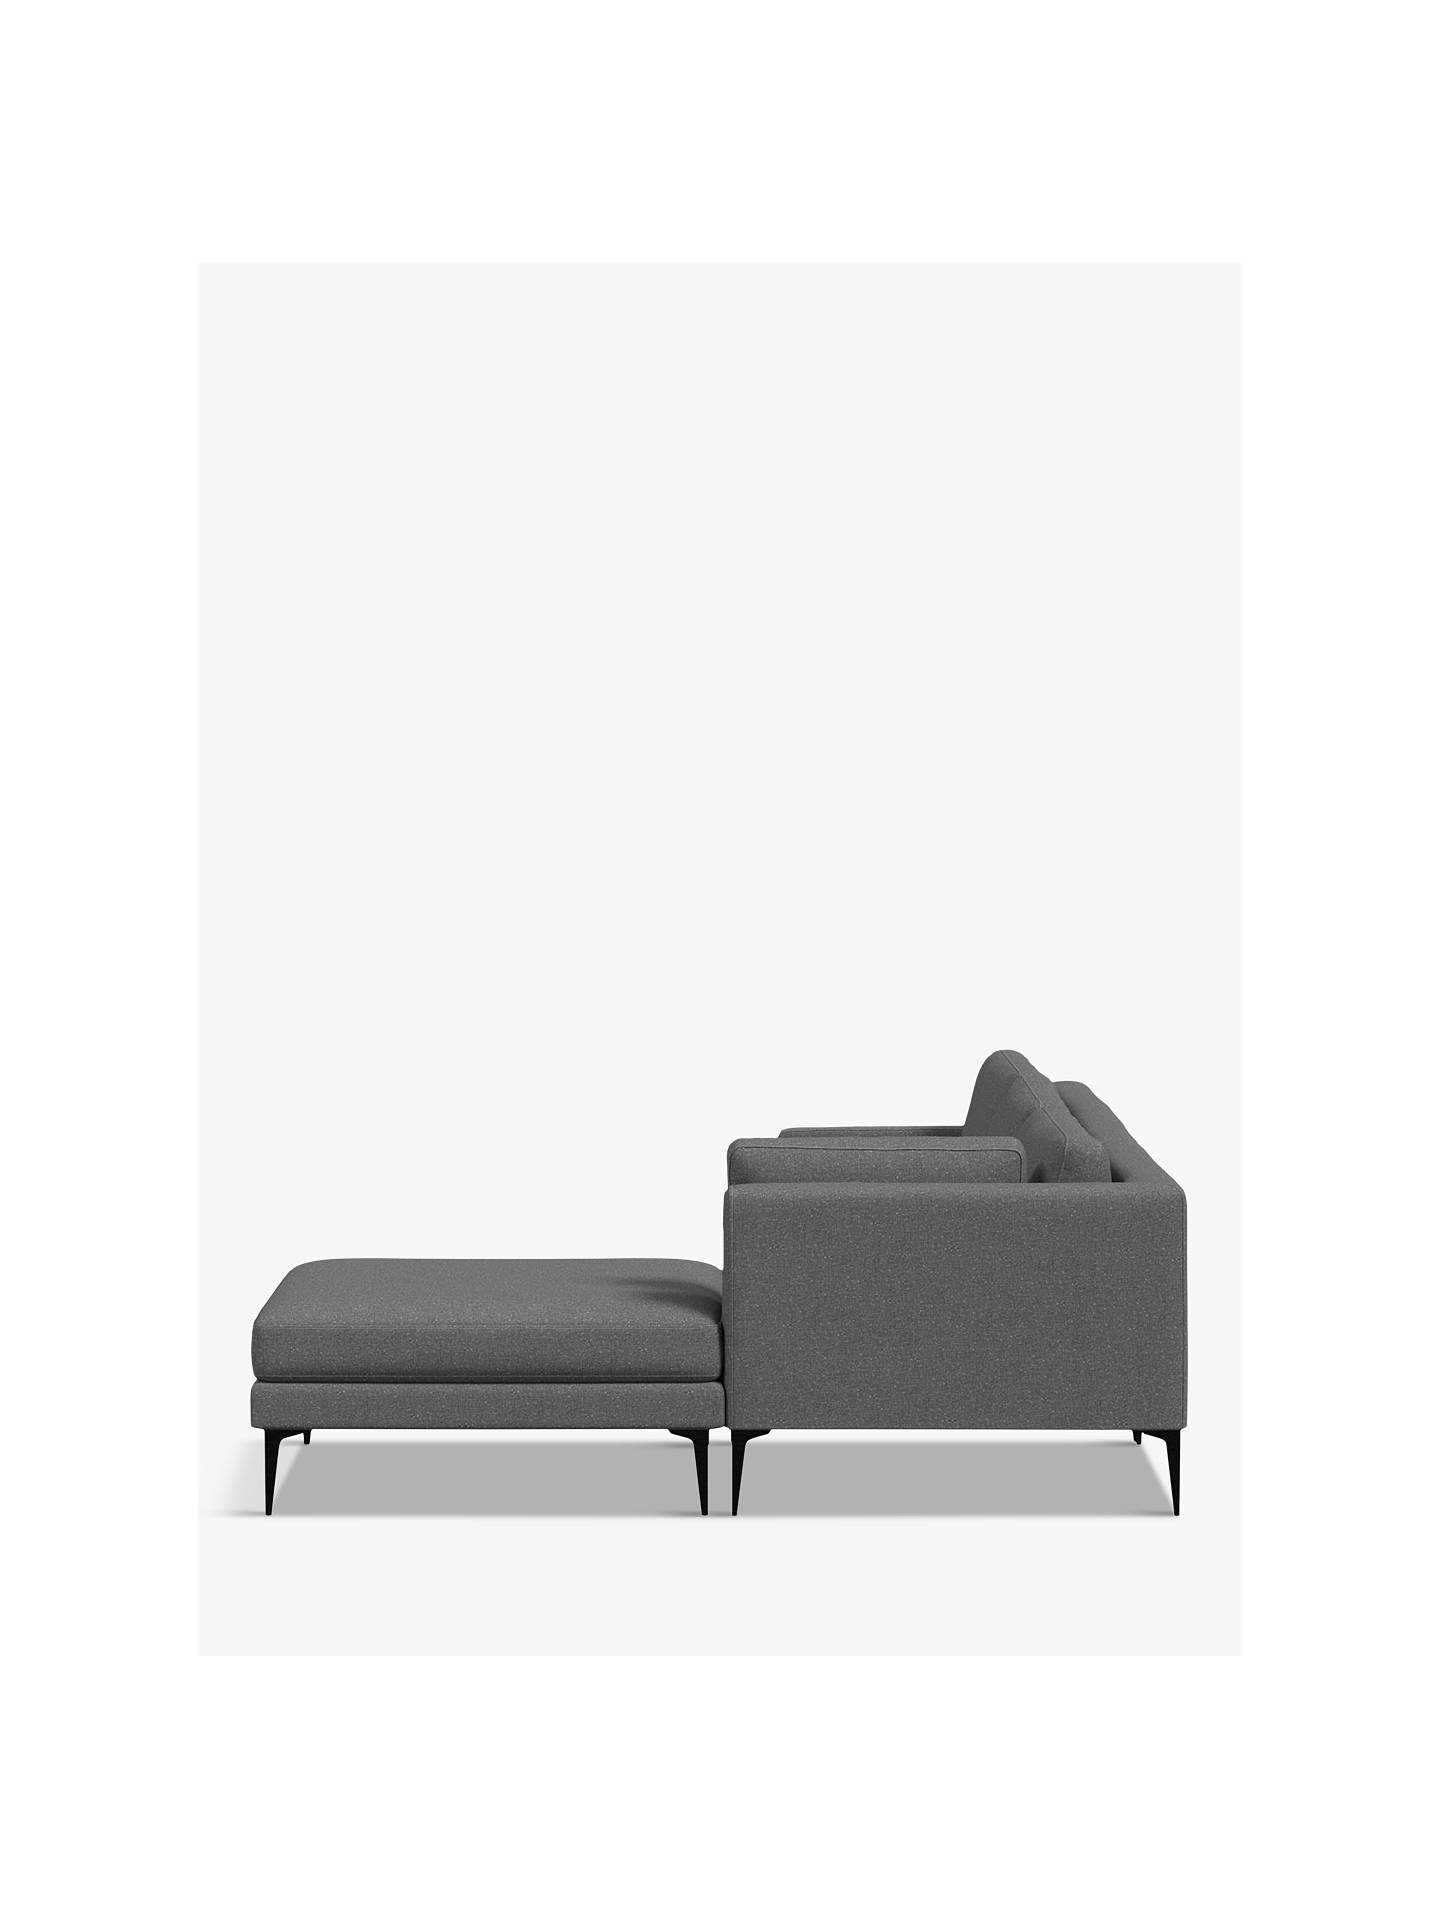 Tremendous West Elm Andes Large 3 Seater Rhf Sectional Sofa Salt And Alphanode Cool Chair Designs And Ideas Alphanodeonline